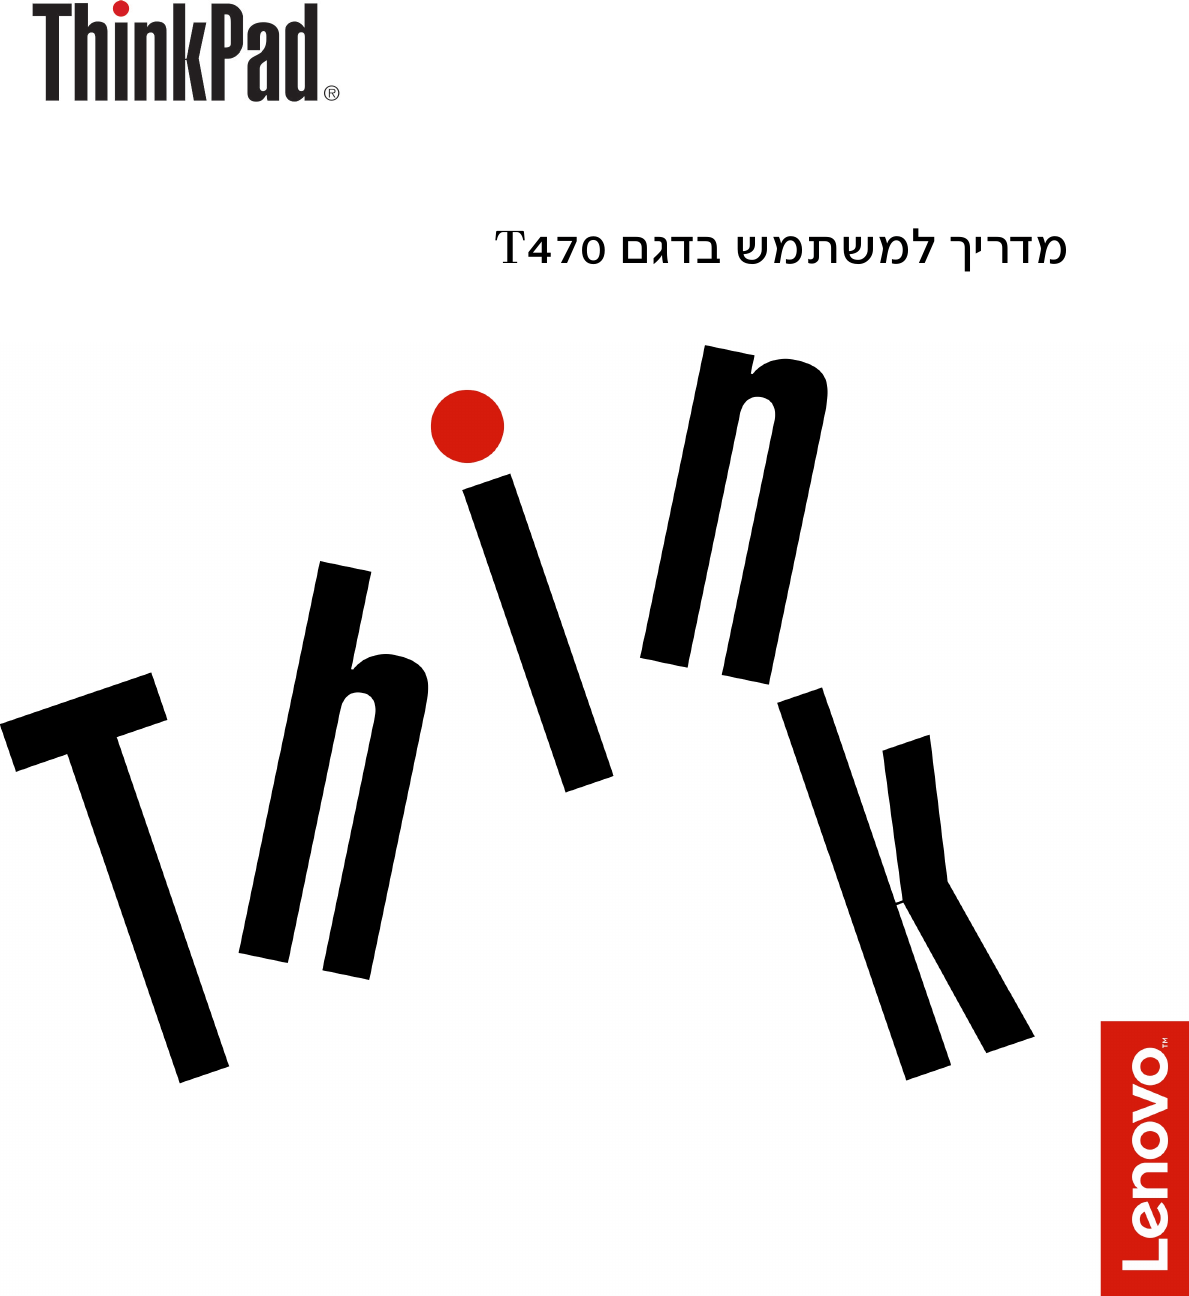 Lenovo T470 Ug He User Manual (Hebrew) Guide Think Pad